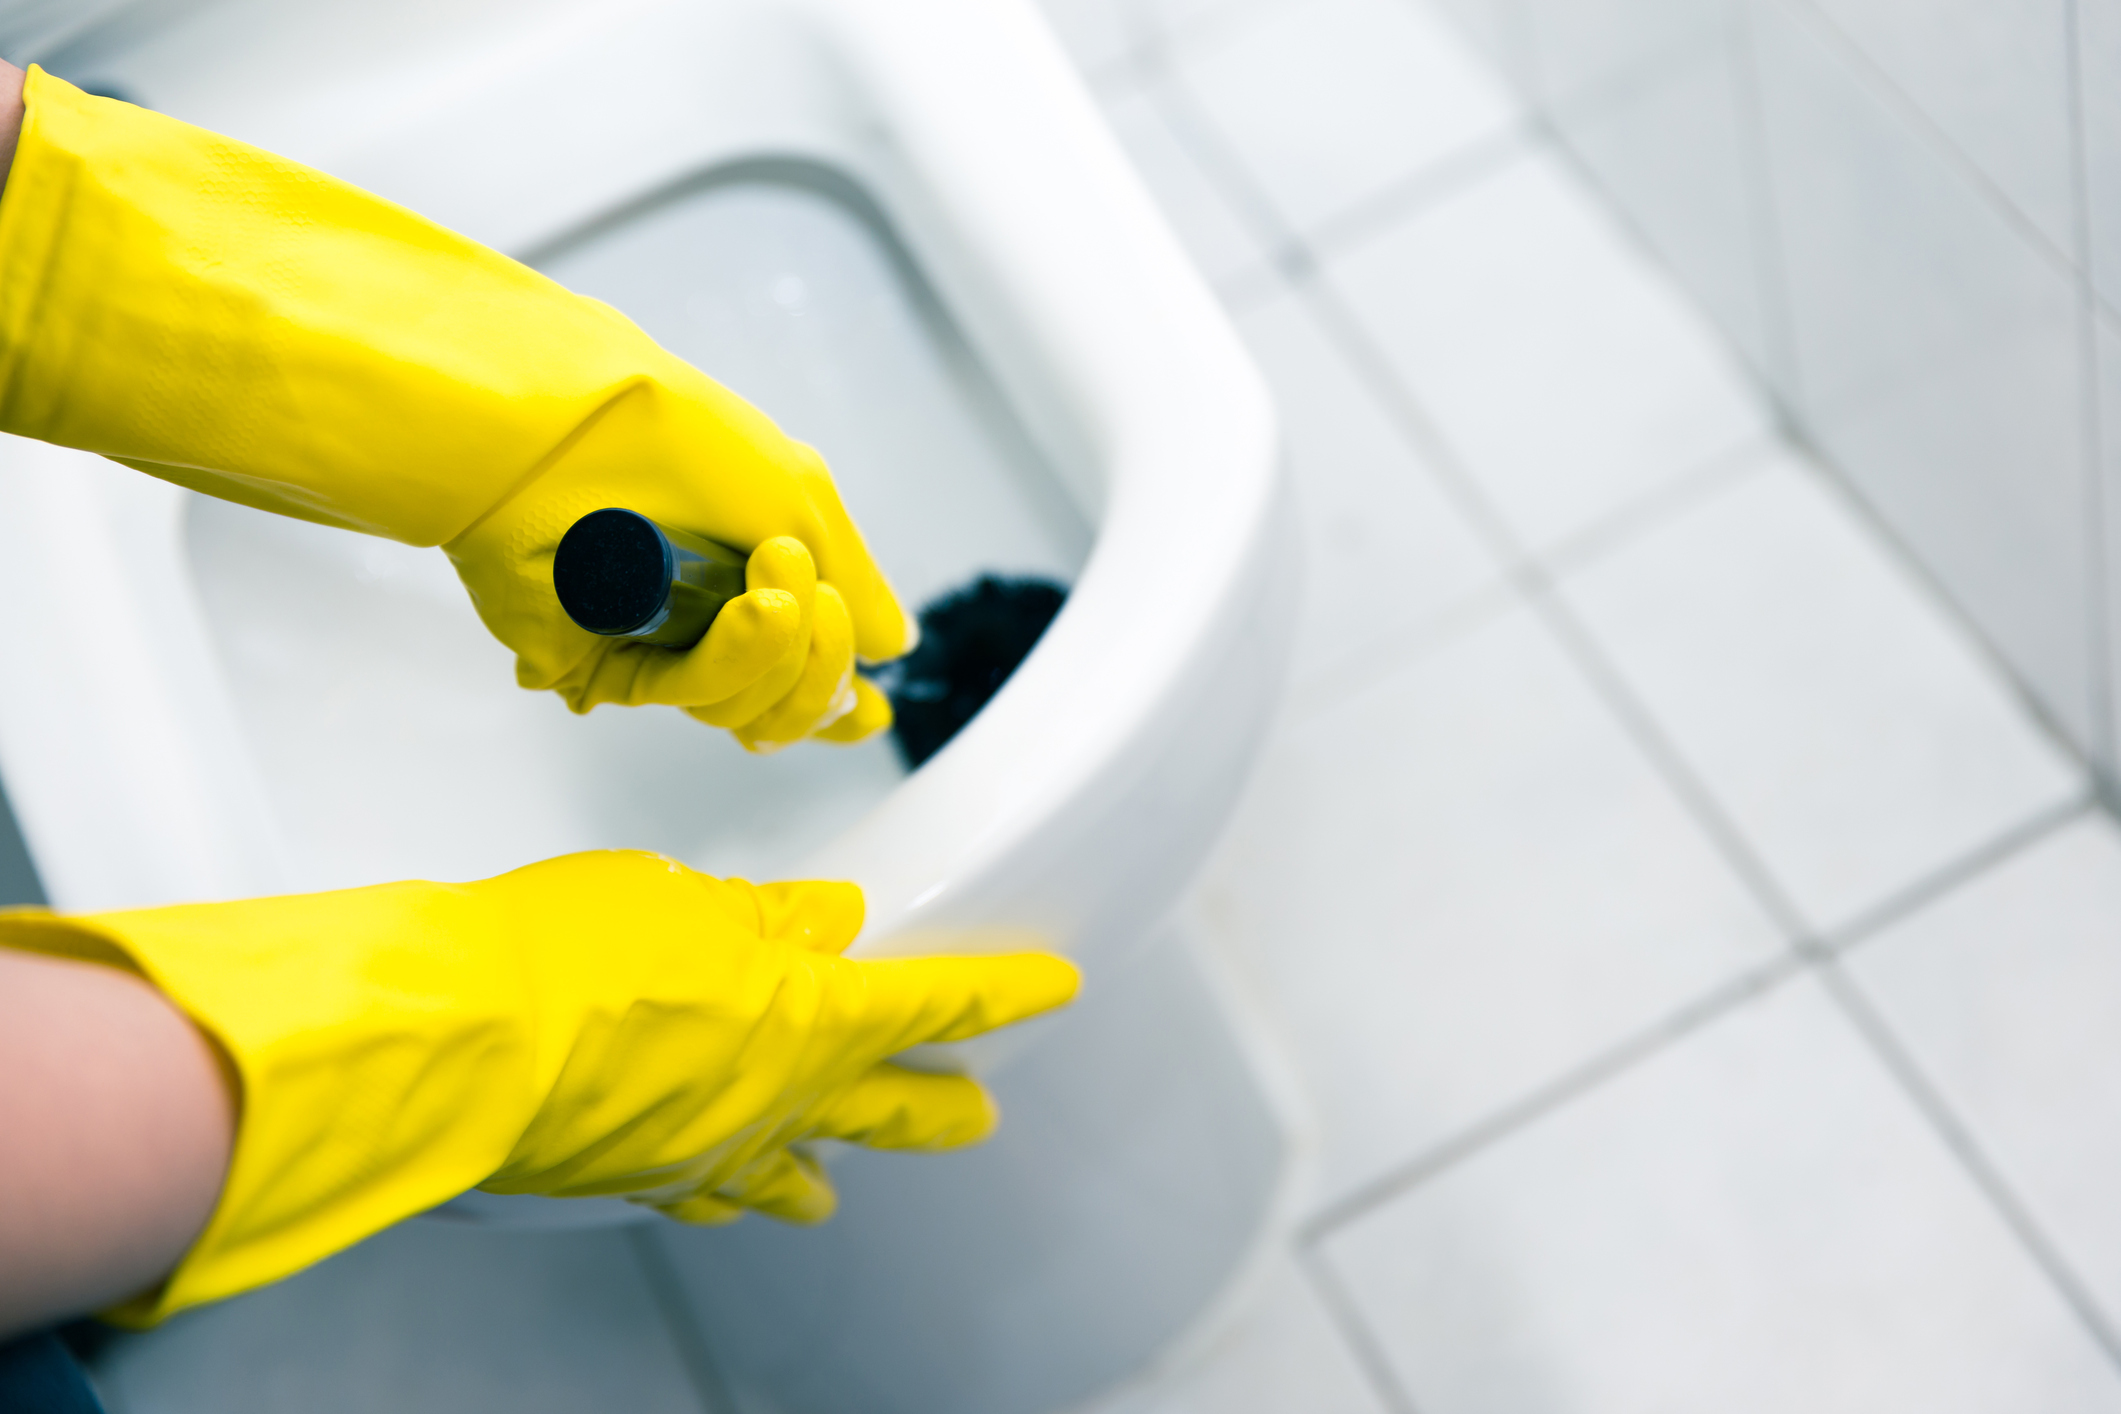 Best Way To Clean Bathroom The Right Way To Clean Your Toilet Len The Plumber